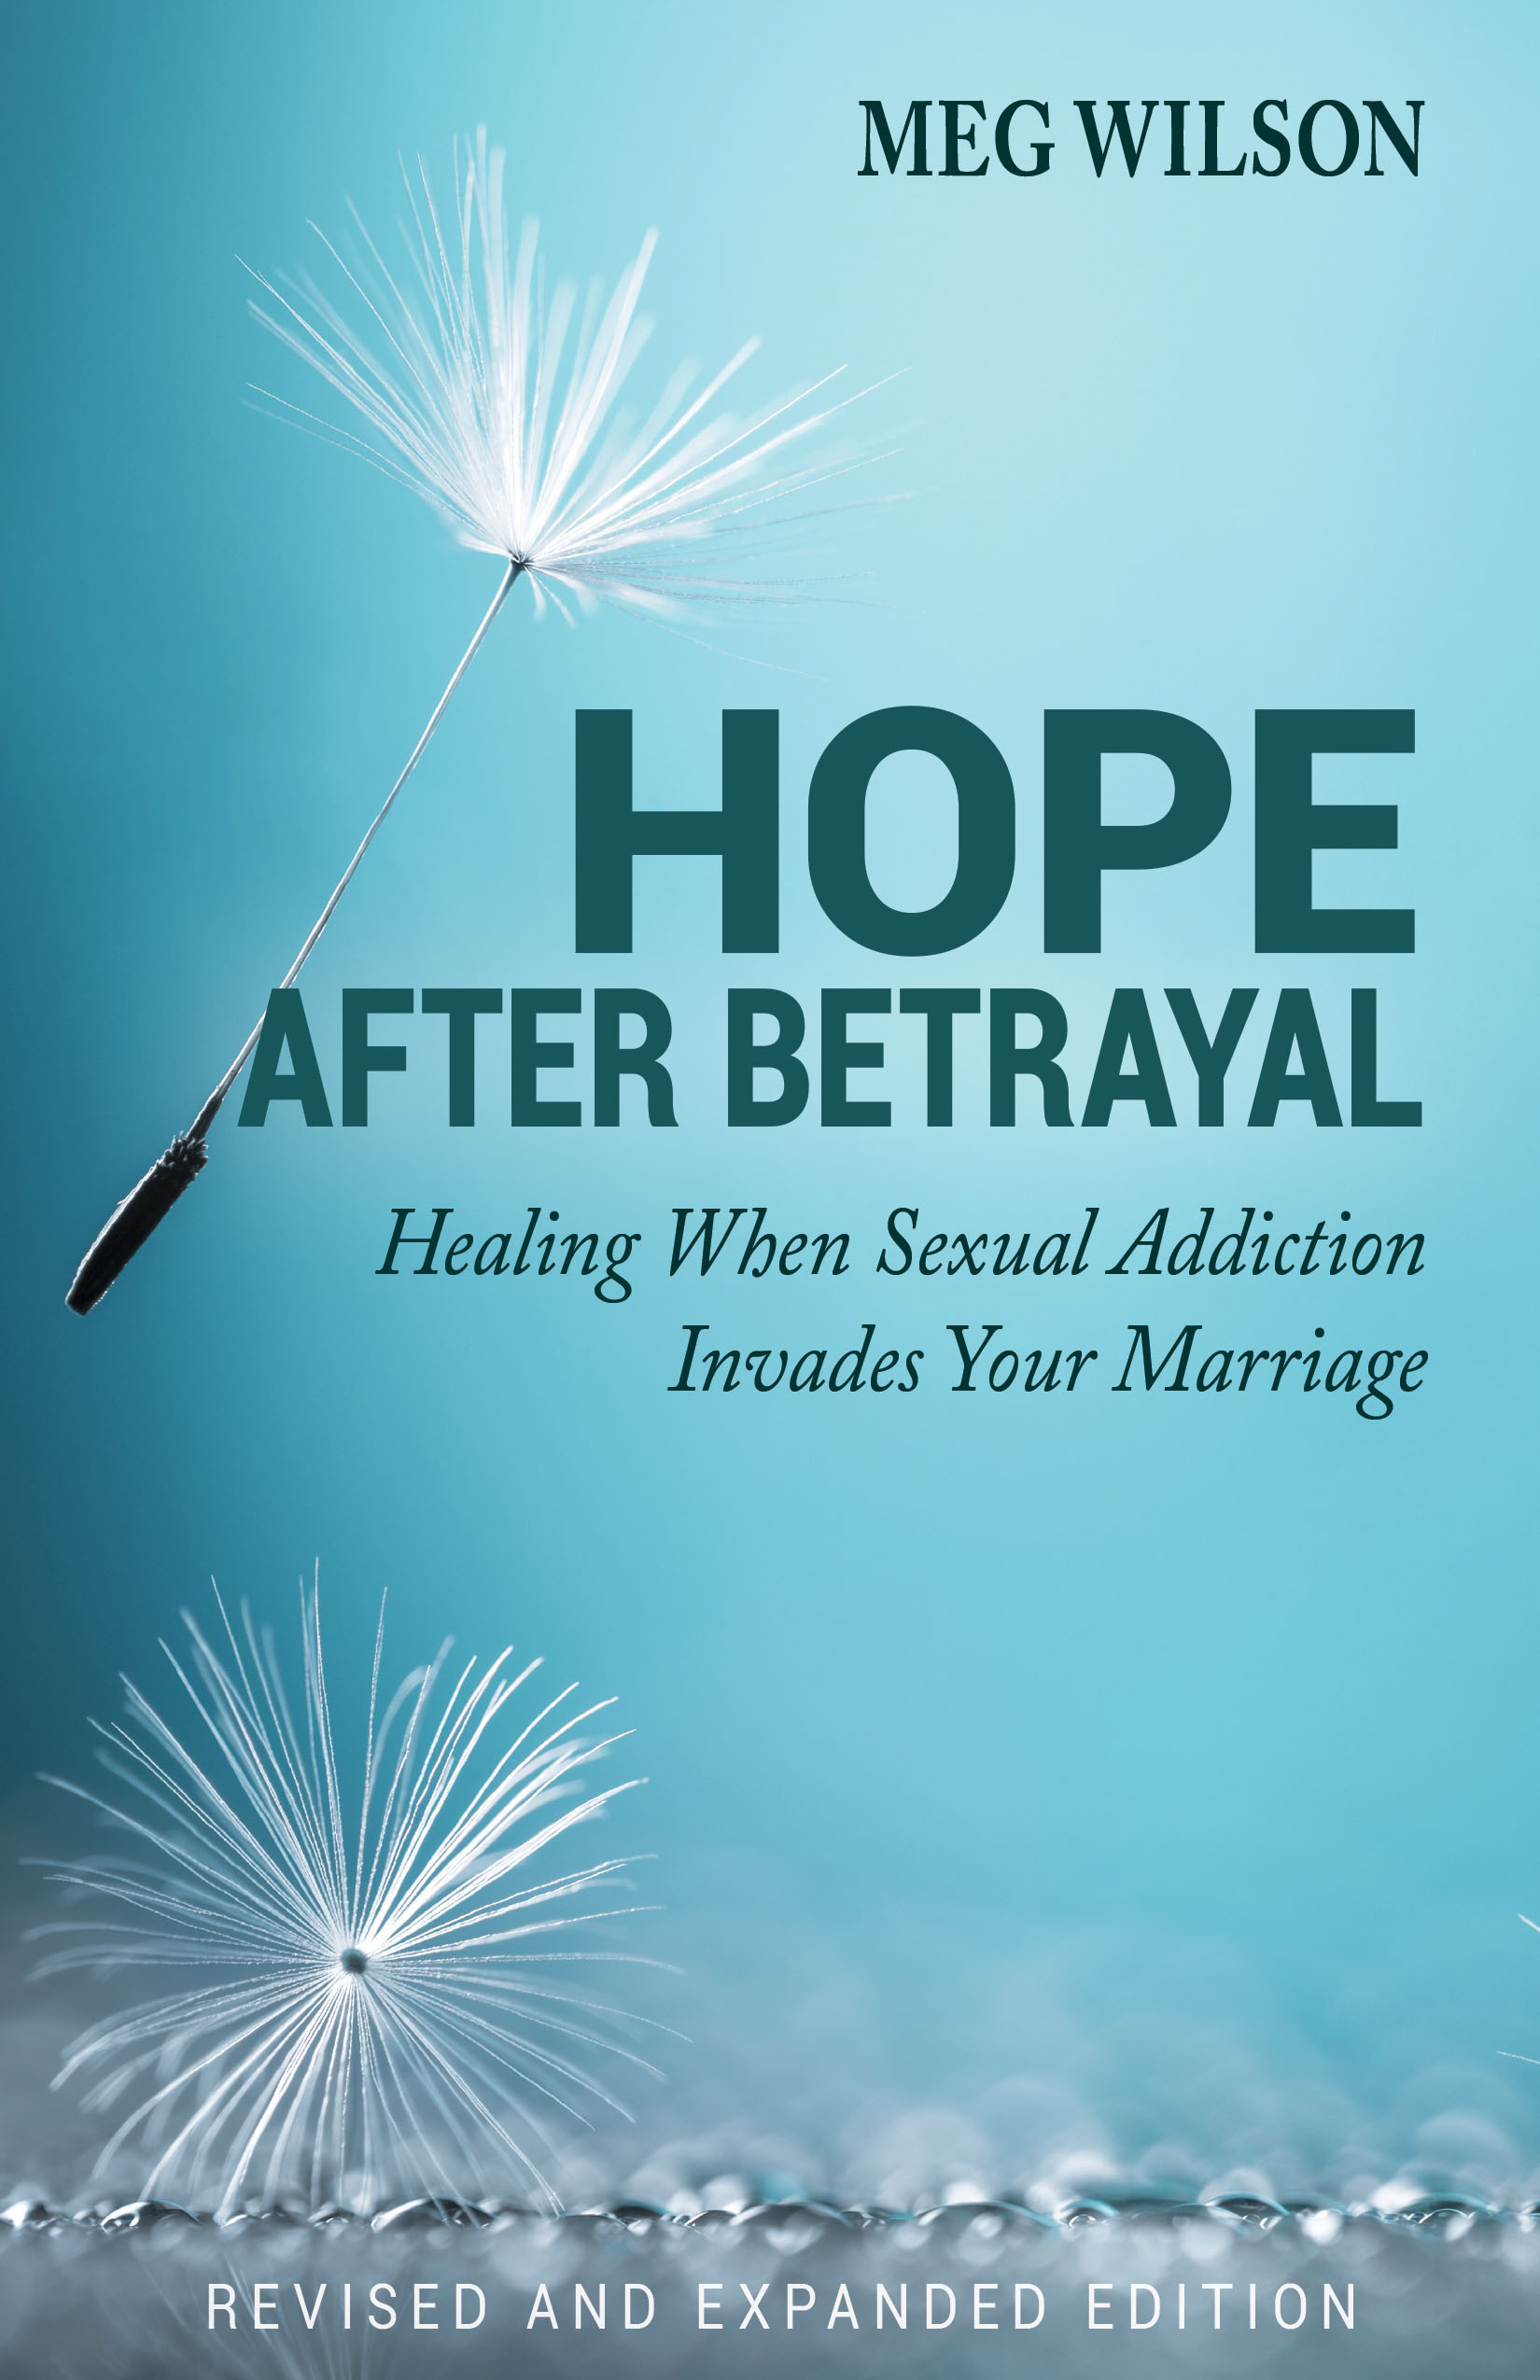 Hope After Betrayal, Revised and Expanded Edition